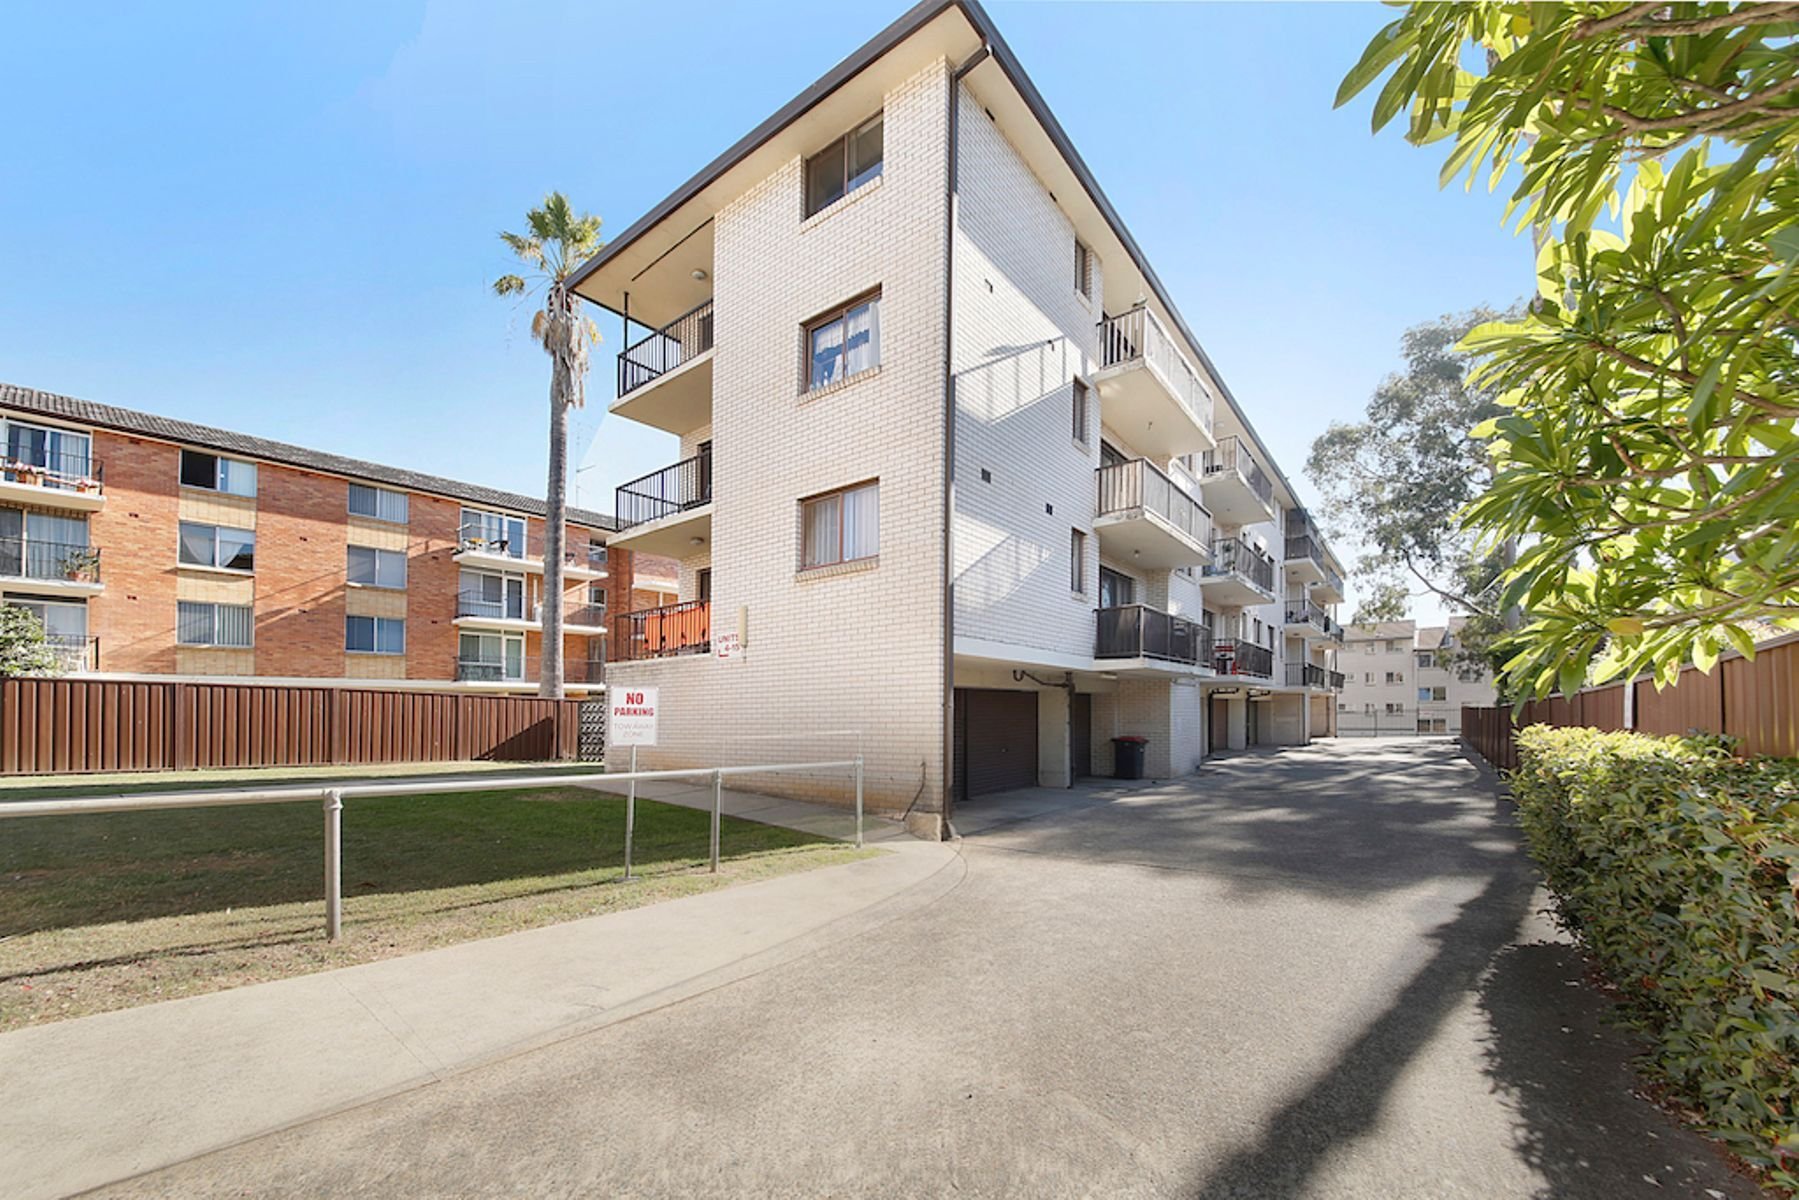 12/191 Derby Street, Penrith, NSW 2750